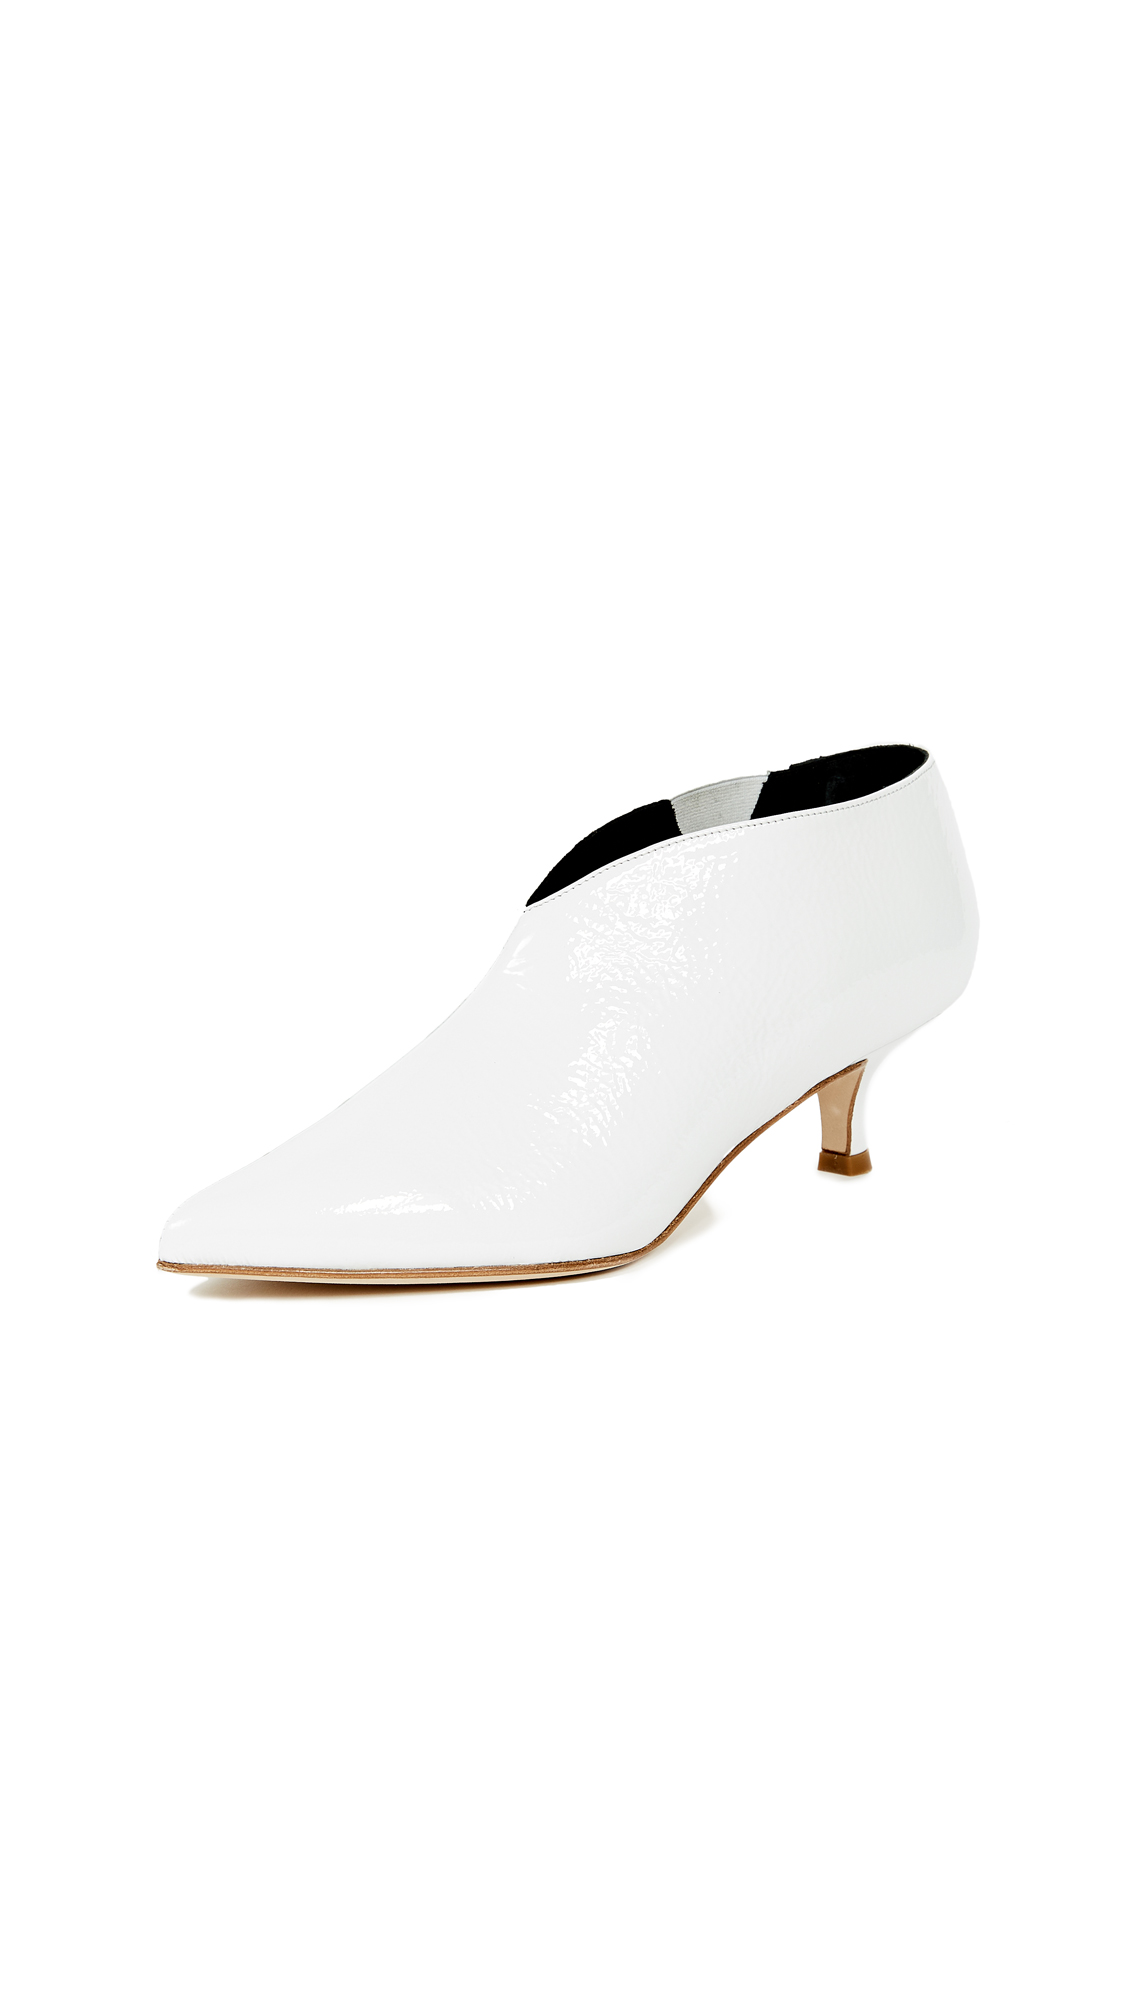 Tibi Joe Short Booties - Bright White